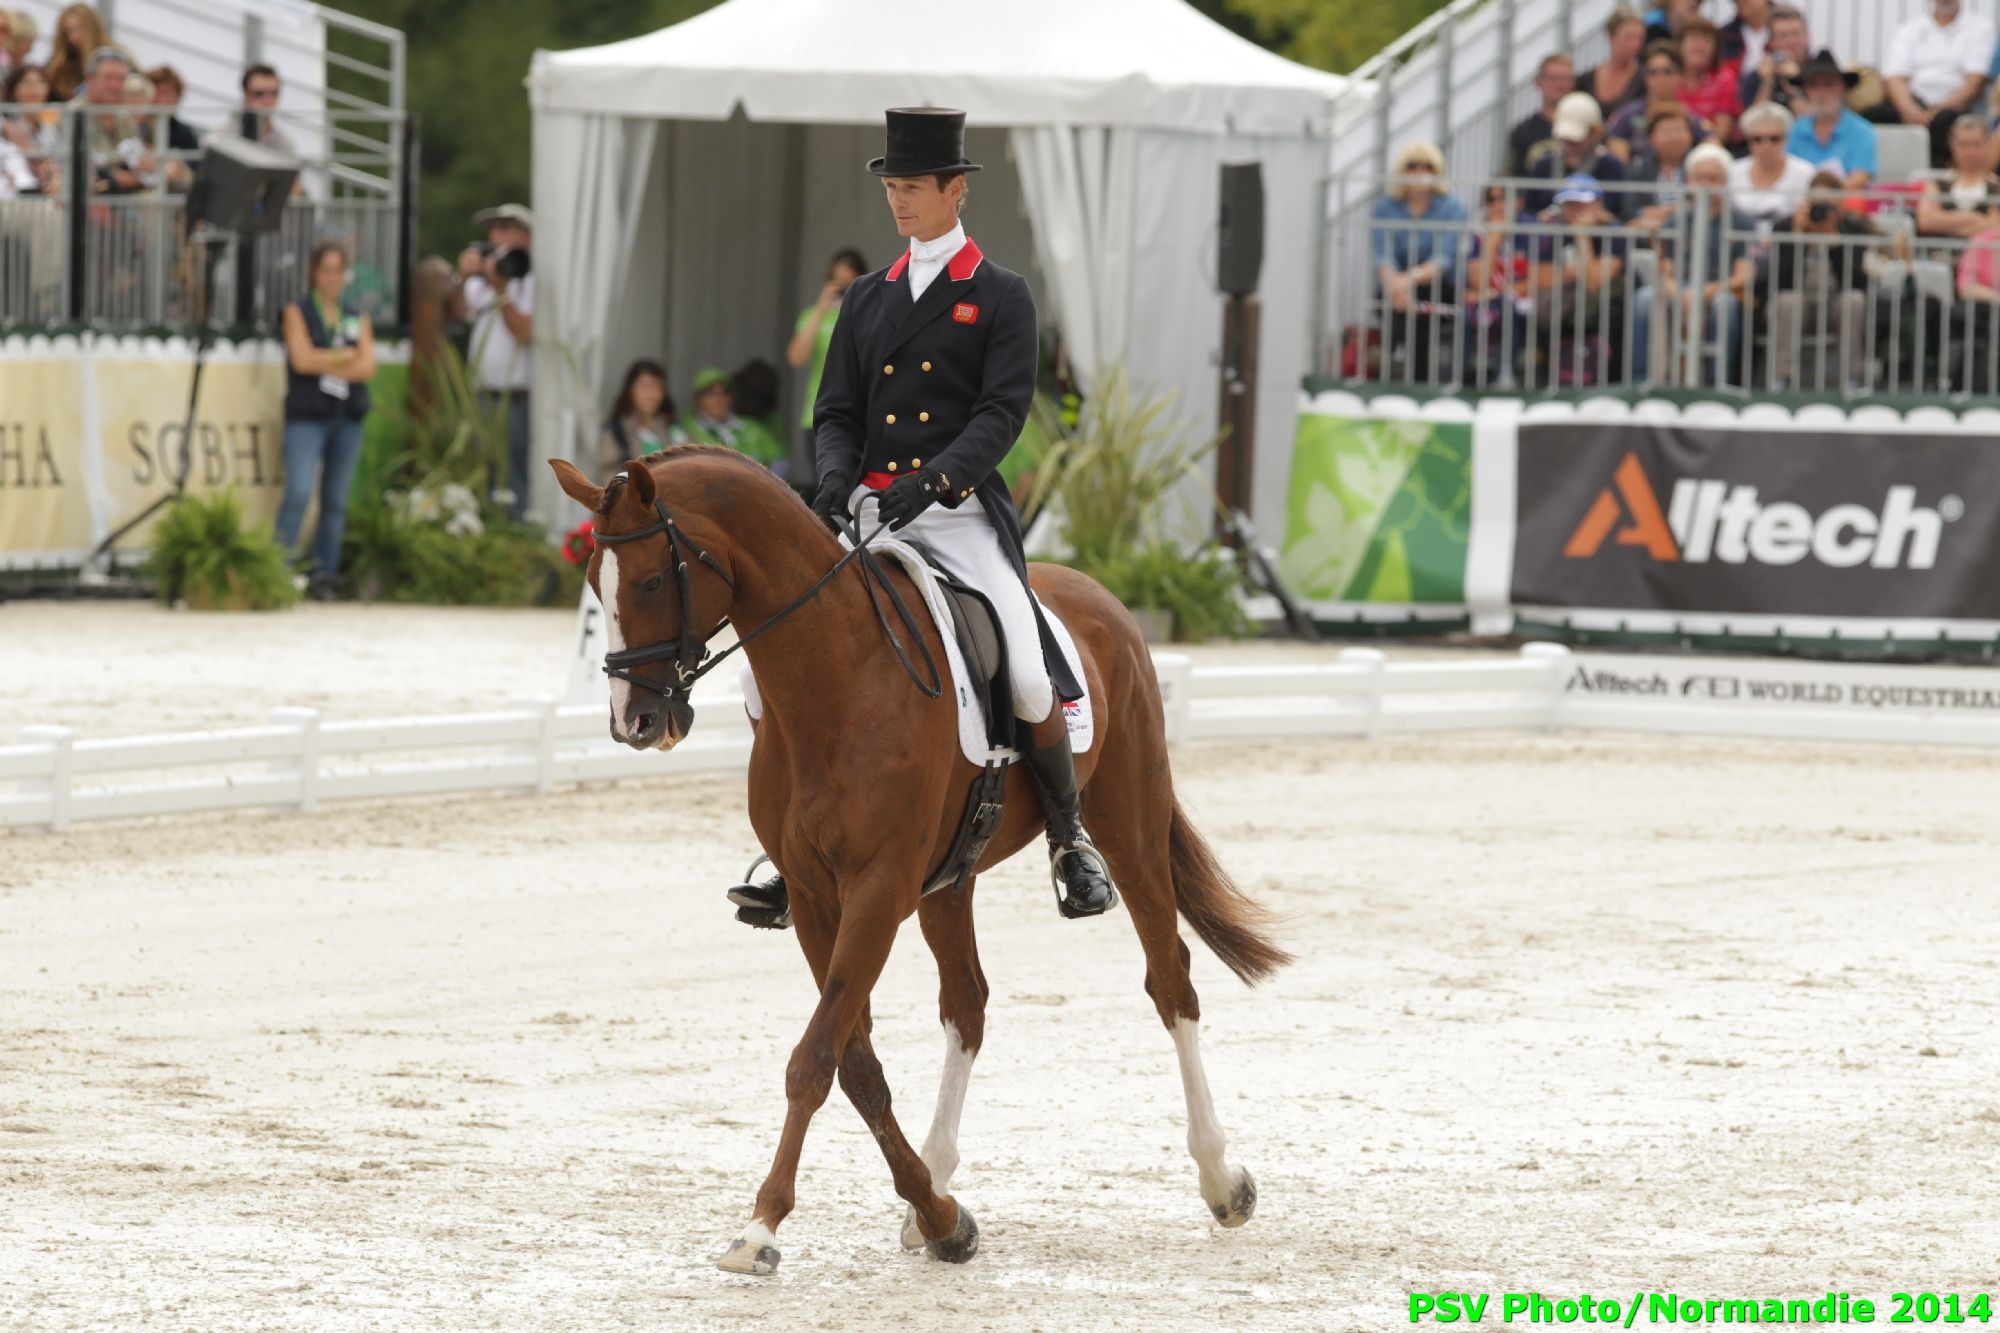 CCE Dressage - William Fox-Pitt - Chilli Morning - GBR - August 28th - Copyright : PSV Photo